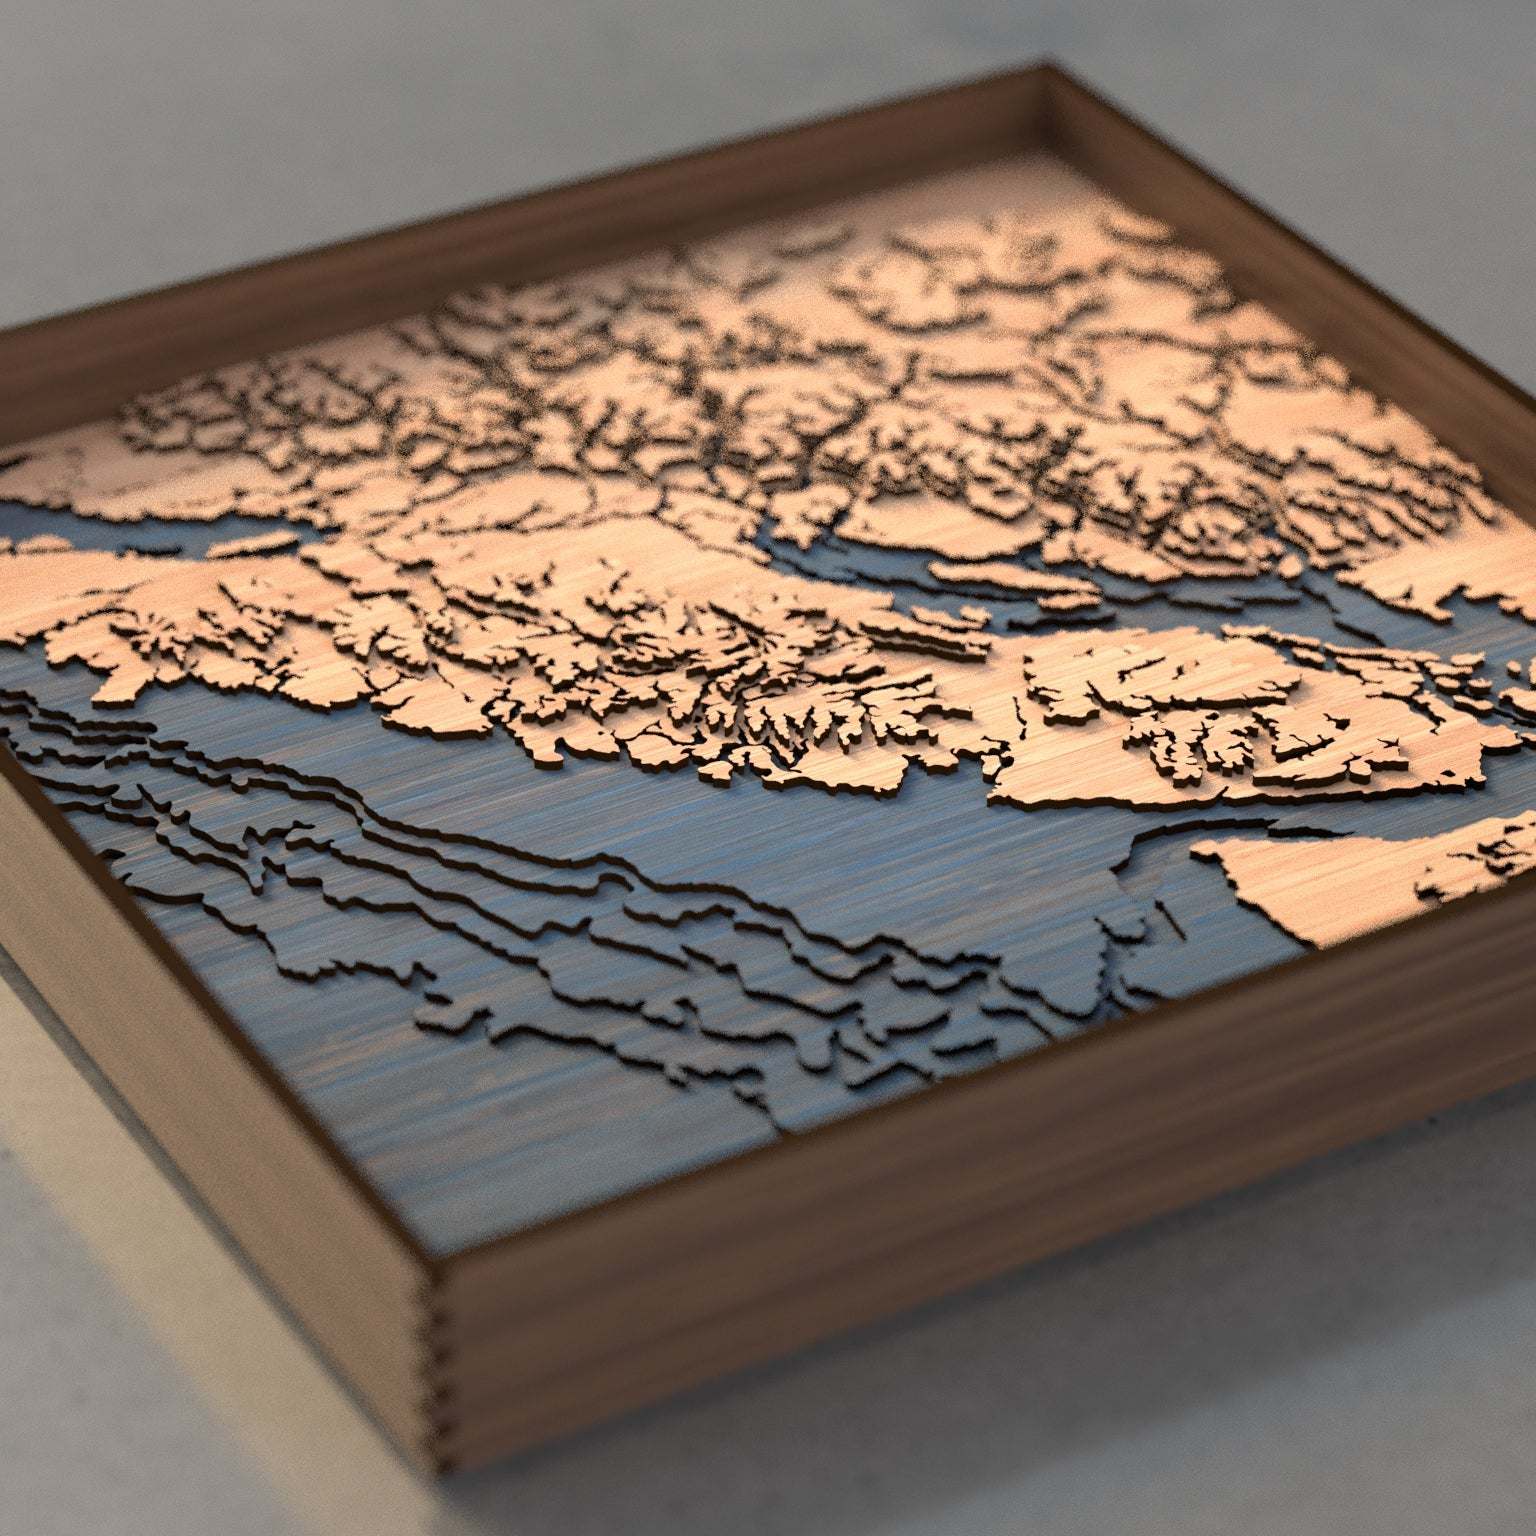 vancouver island topographic wood map flat angle